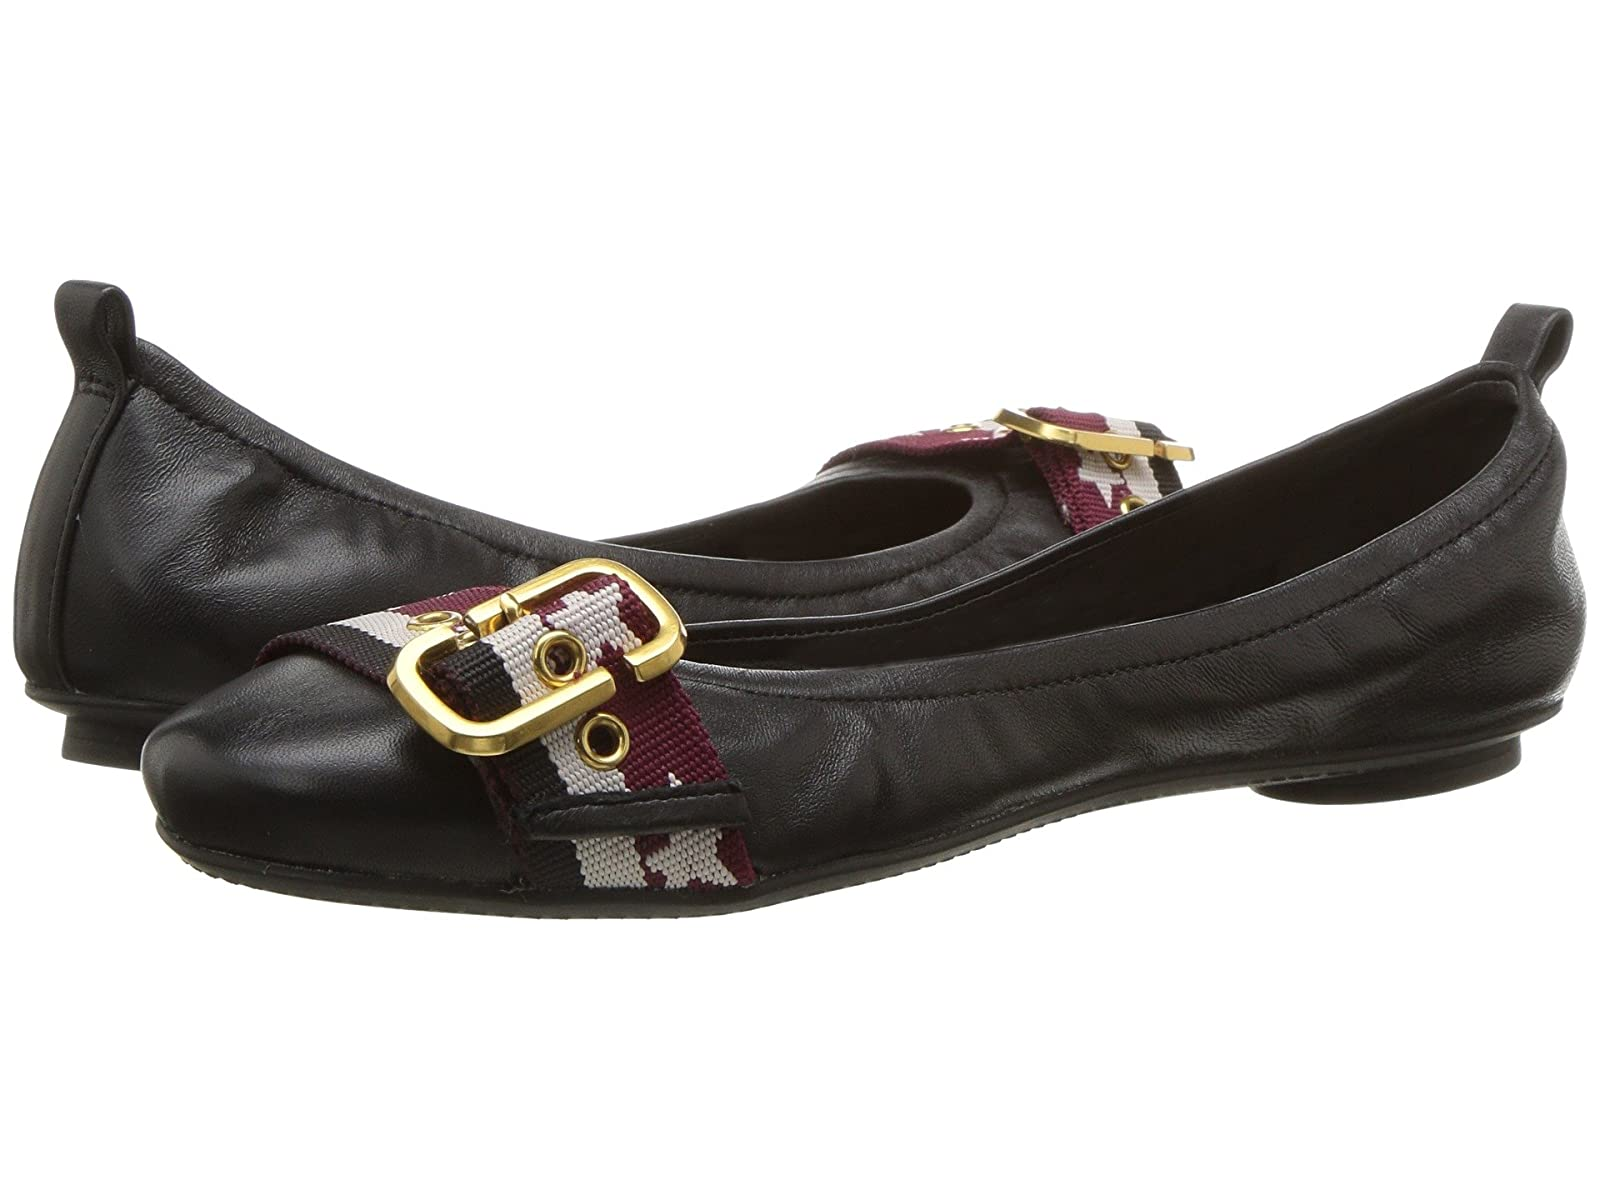 Marc Jacobs DollyCheap and distinctive eye-catching shoes